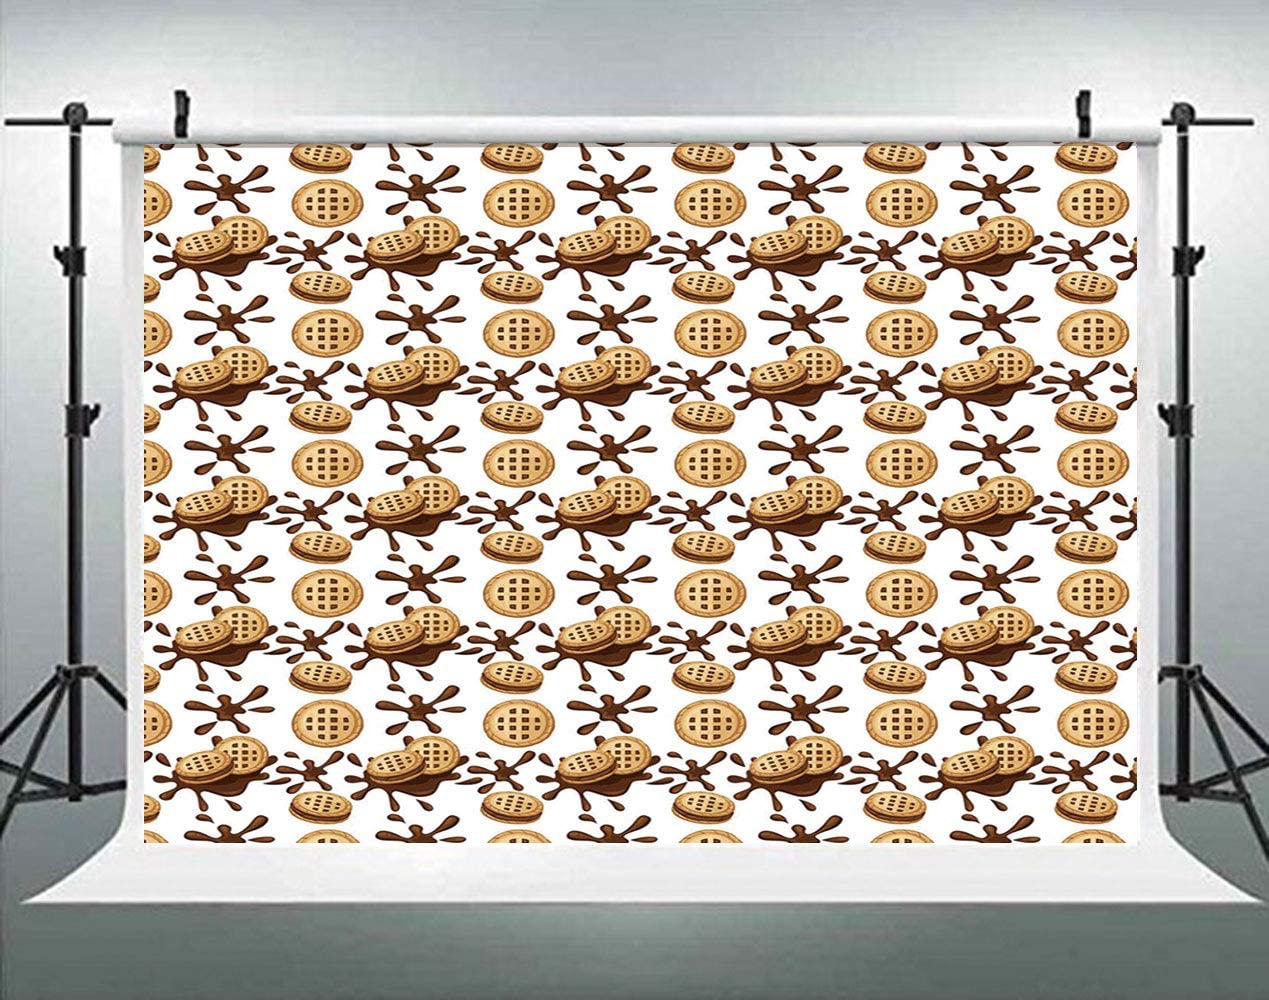 Sandwich Cookies Biscuits with Cocoa Cream Graphic ALUONI 5x3ft Chocolate Backdrop for Selfie Birthday Party Pictures Photo Dance Decor Wedding Studio Background AM007509